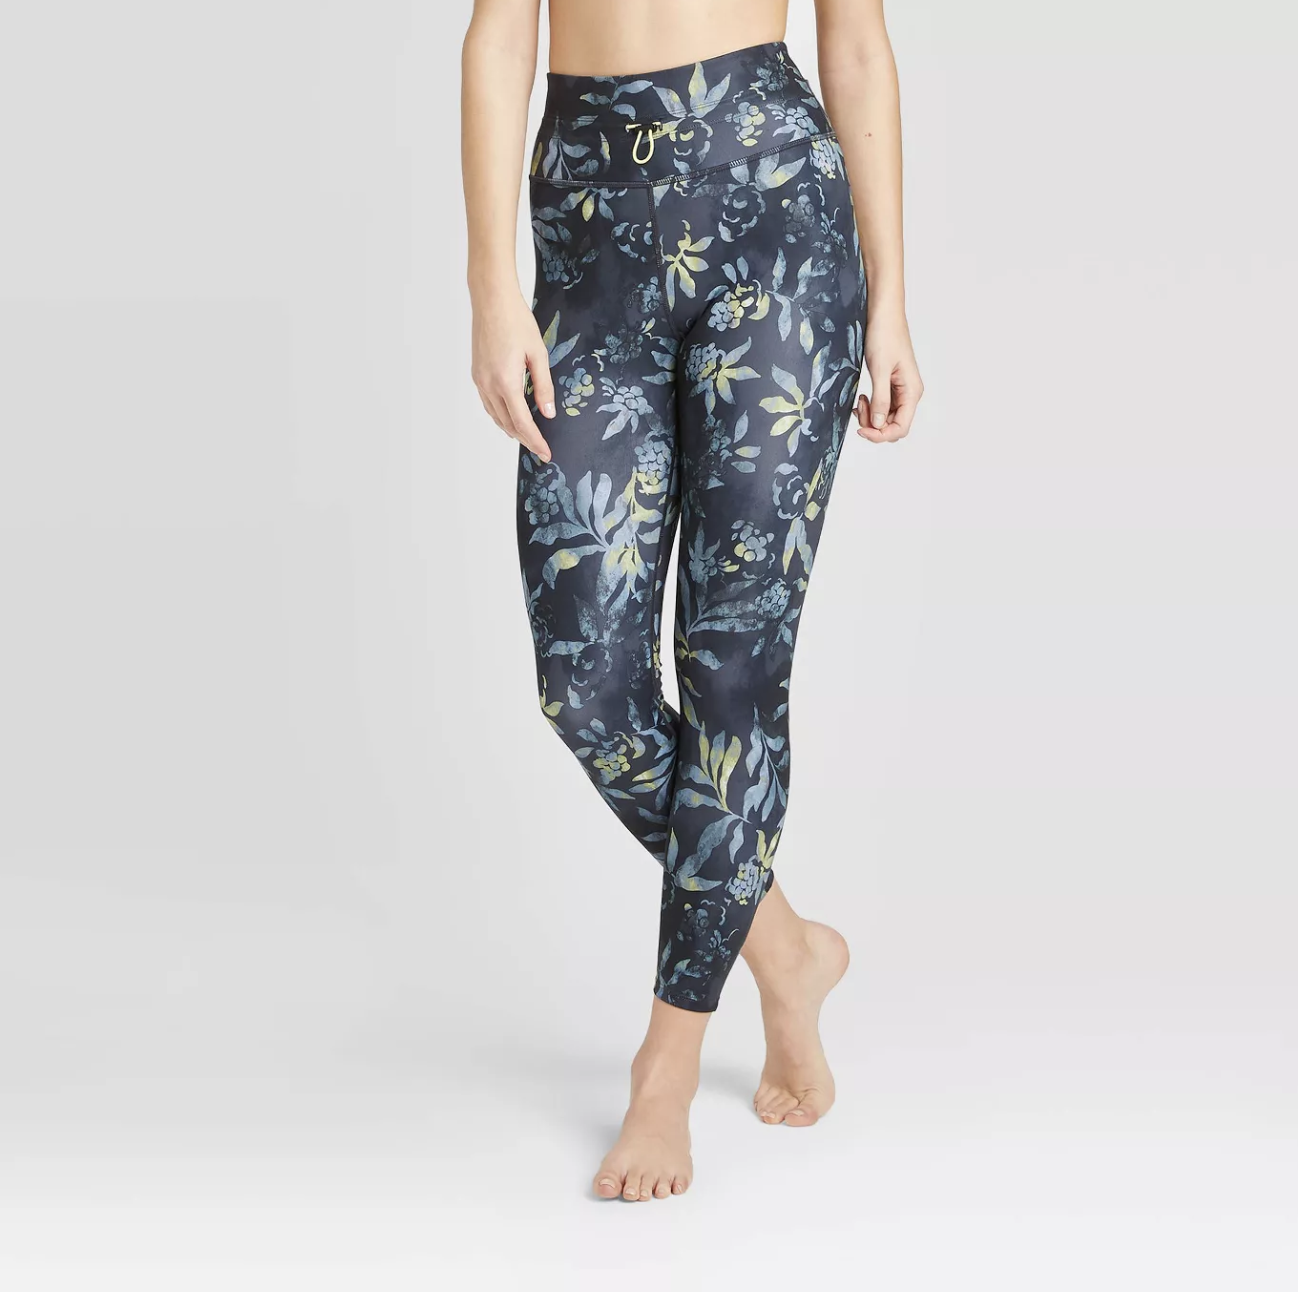 We'd Give Up Basic Black Leggings for These 6 Fresh Spring Trends 5